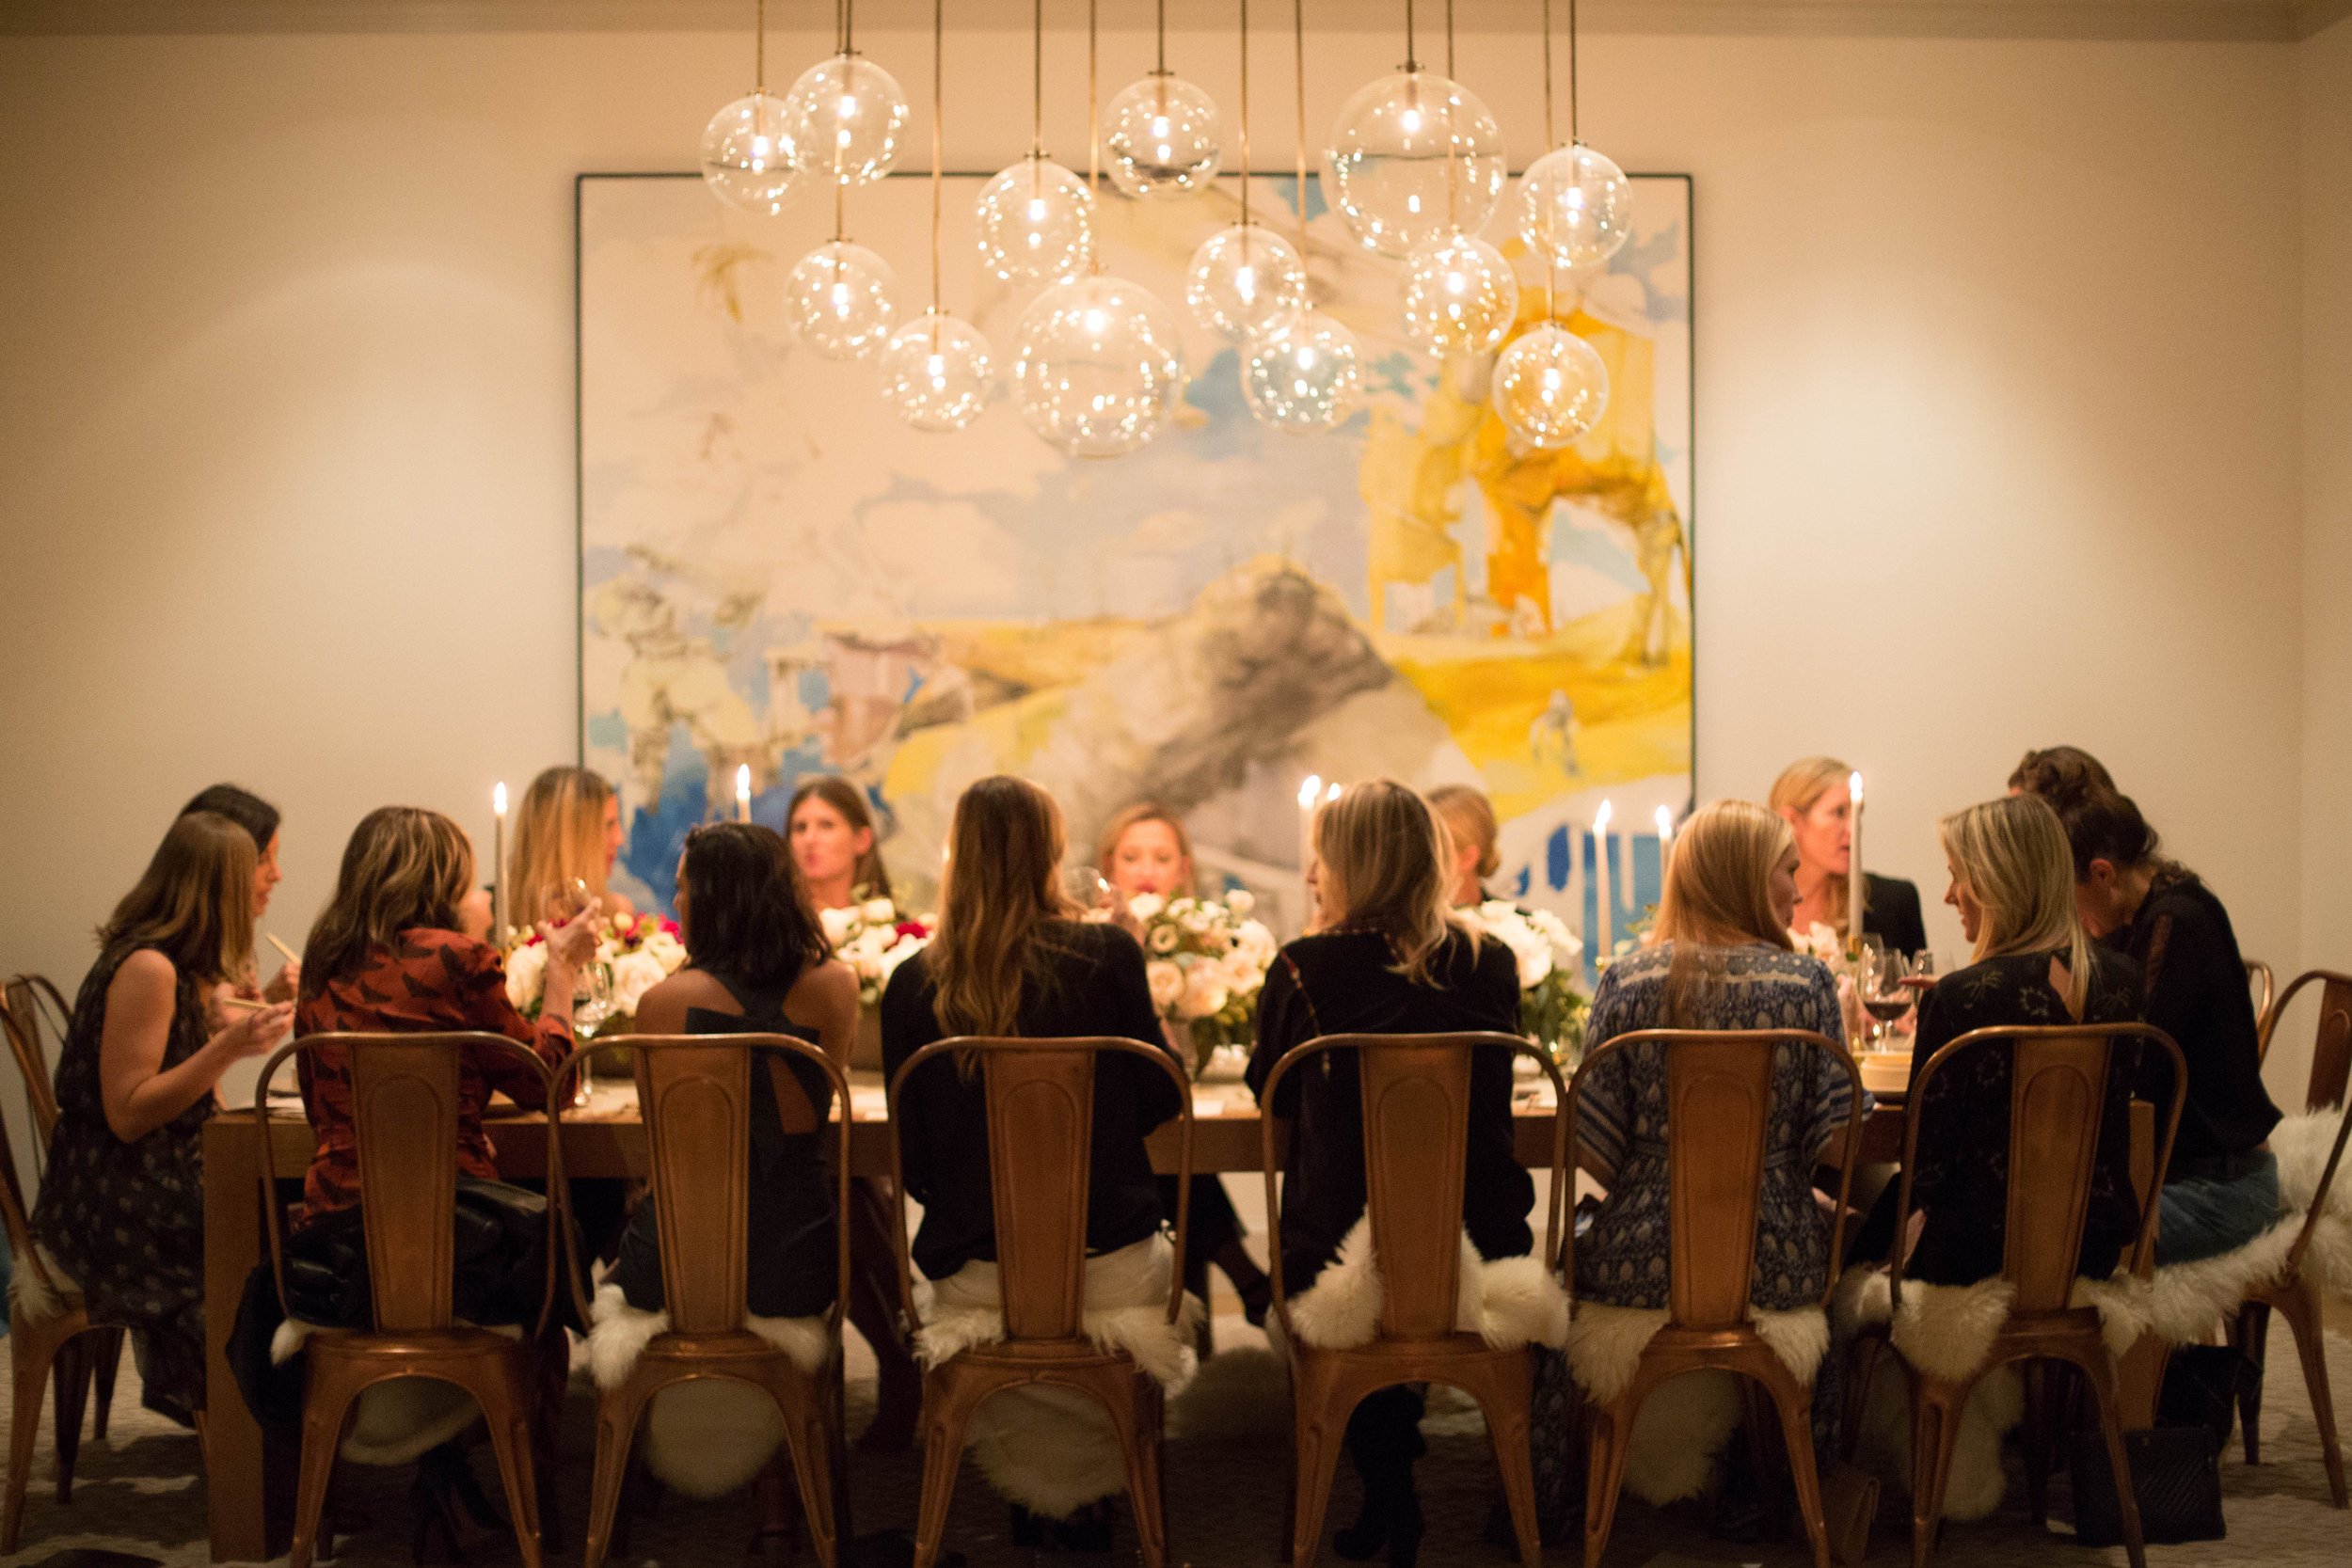 How to Host an Everyday Chic & Intimate Dinner with Friends